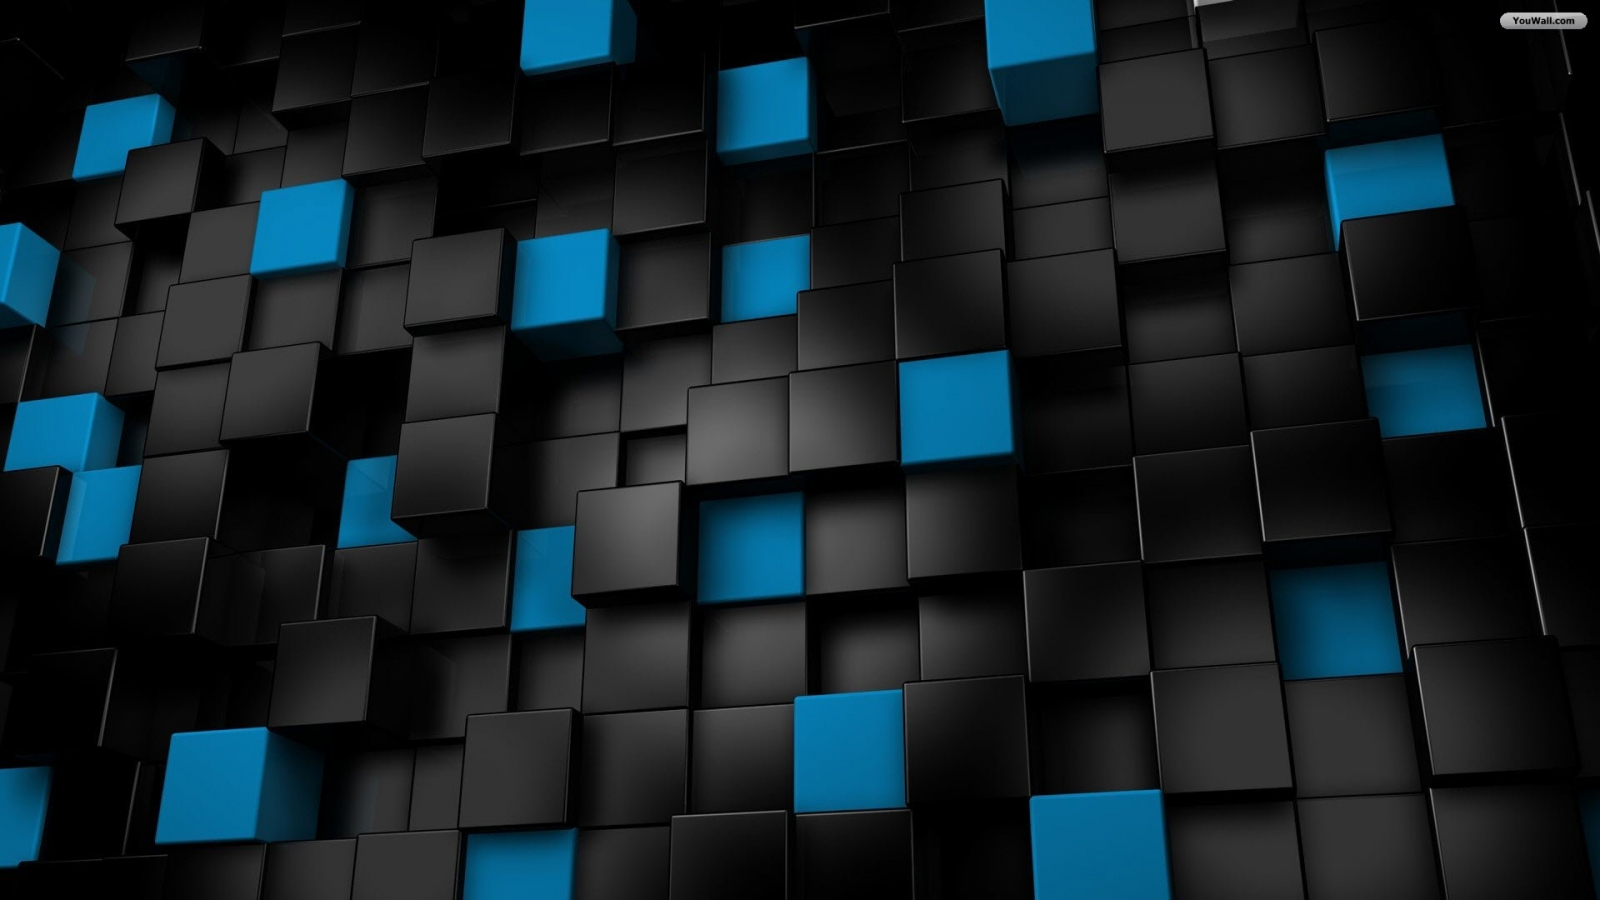 black And blue cubes wallpaper1